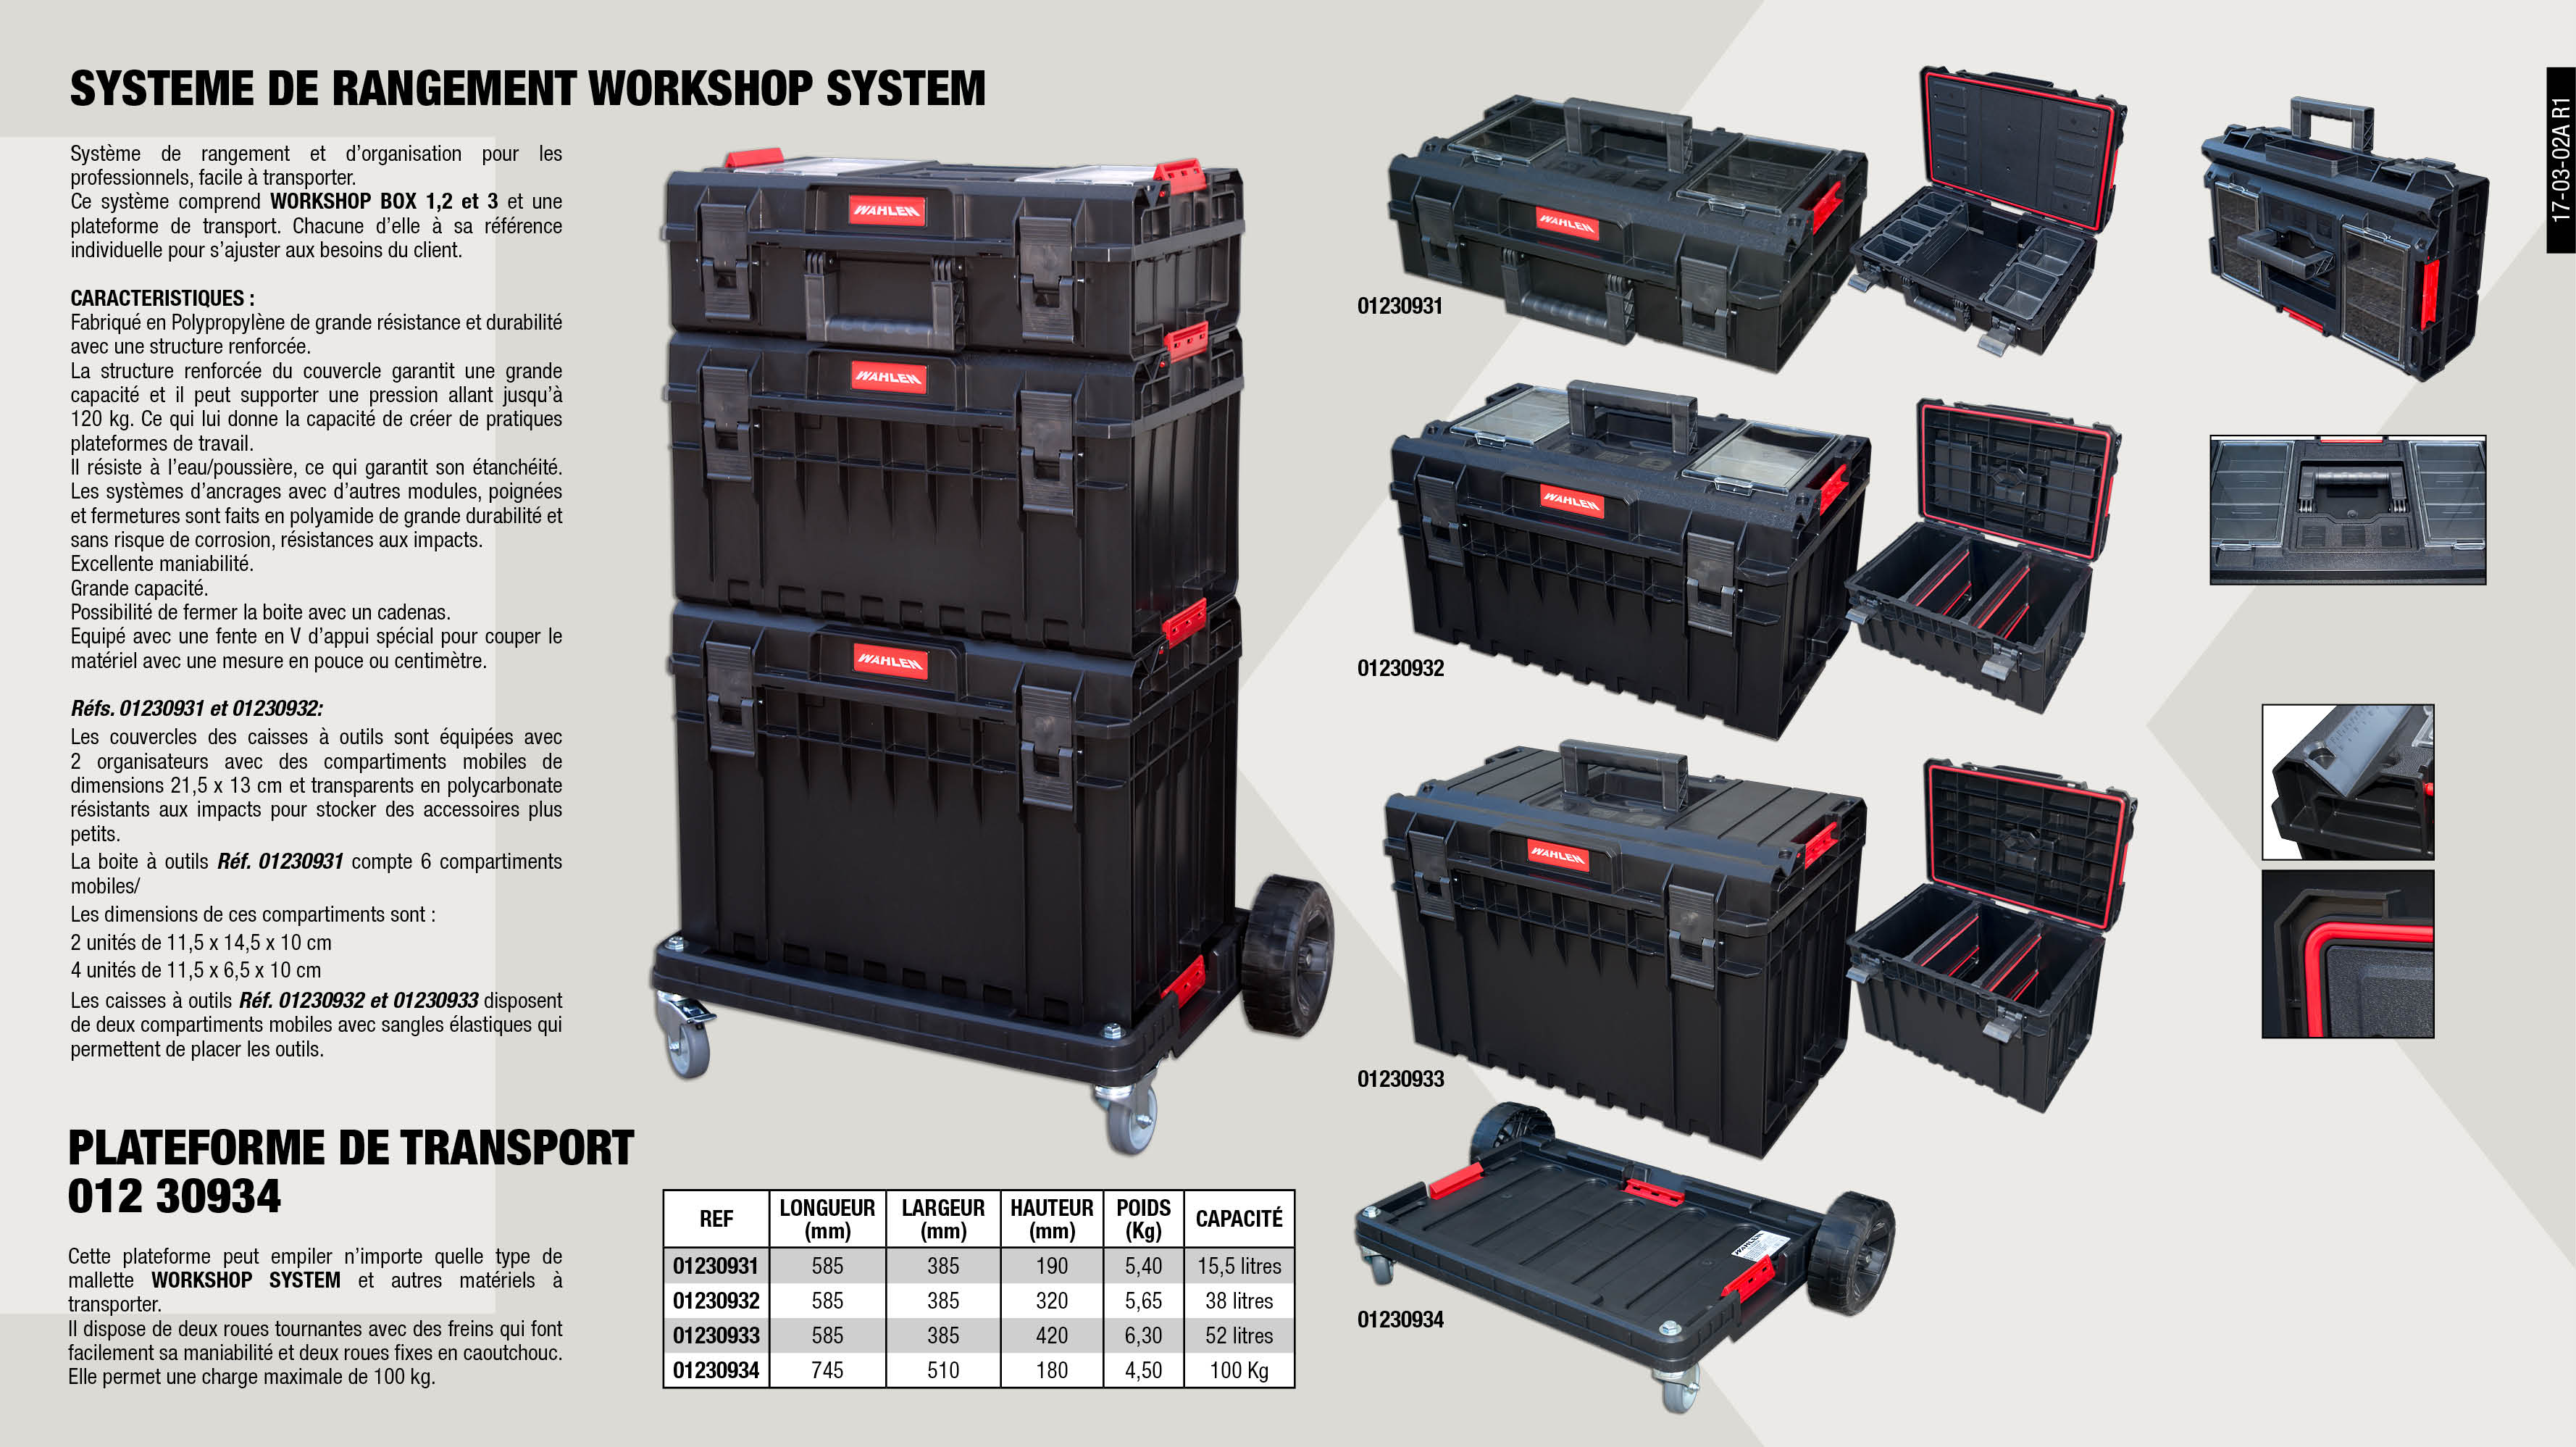 WORKSHOP SYSTEM WAHLEN 2                                    ,  									WORKSHOP SYSTEM WAHLEN 1                                    ,  									WORKSHOP SYSTEM TRANSPORT PLATFORM                          ,  									WORKSHOP SYSTEM WAHLEN 3                                    ,